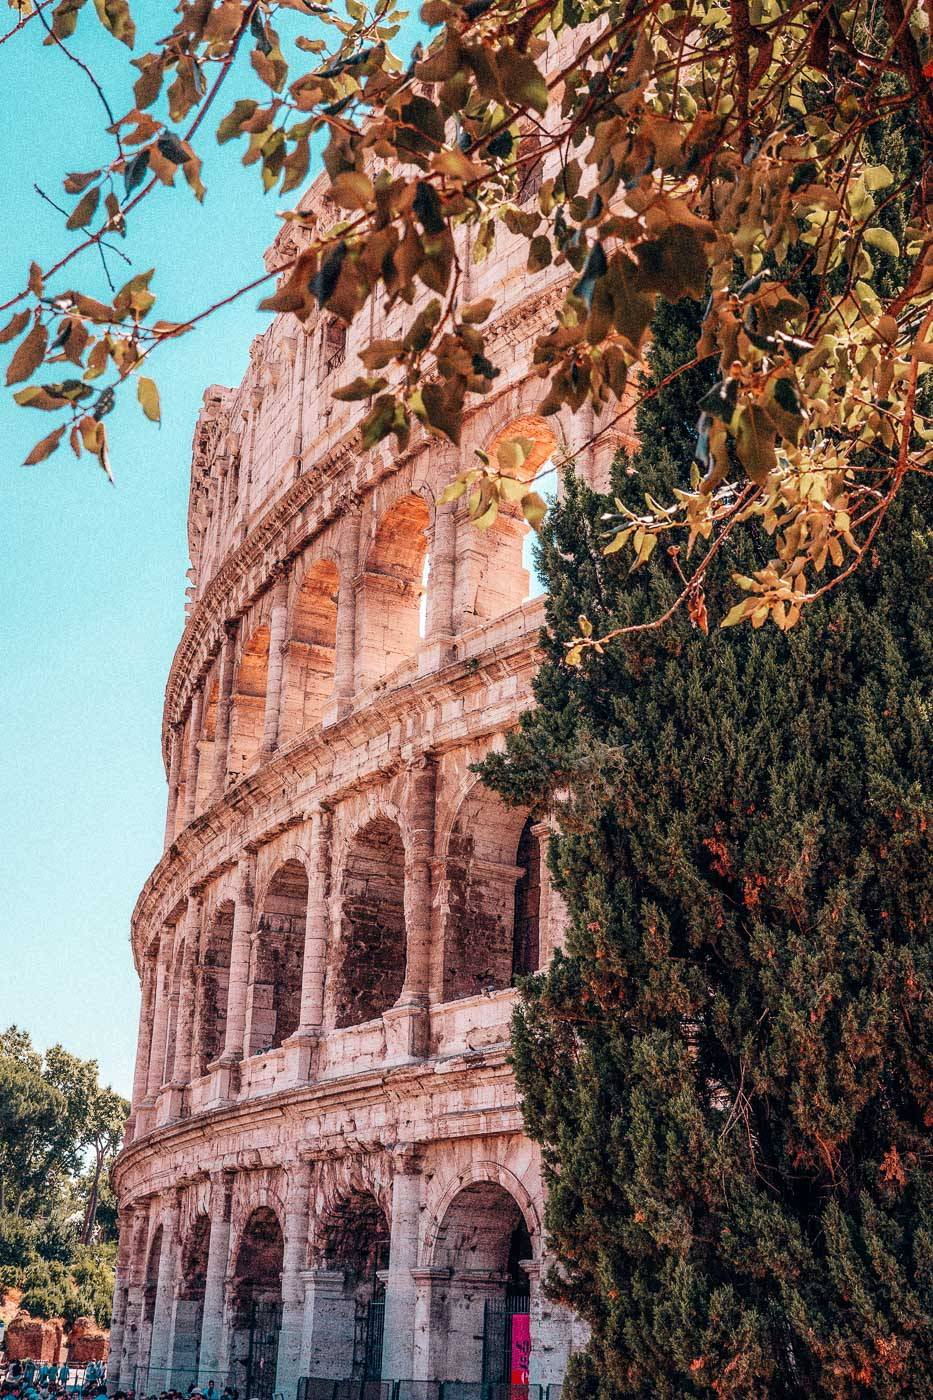 One could travel around Rome for a lifetime: outside the well-known spots is a world of wonder that's less-visited: Here's 25 hidden Gems in Rome!